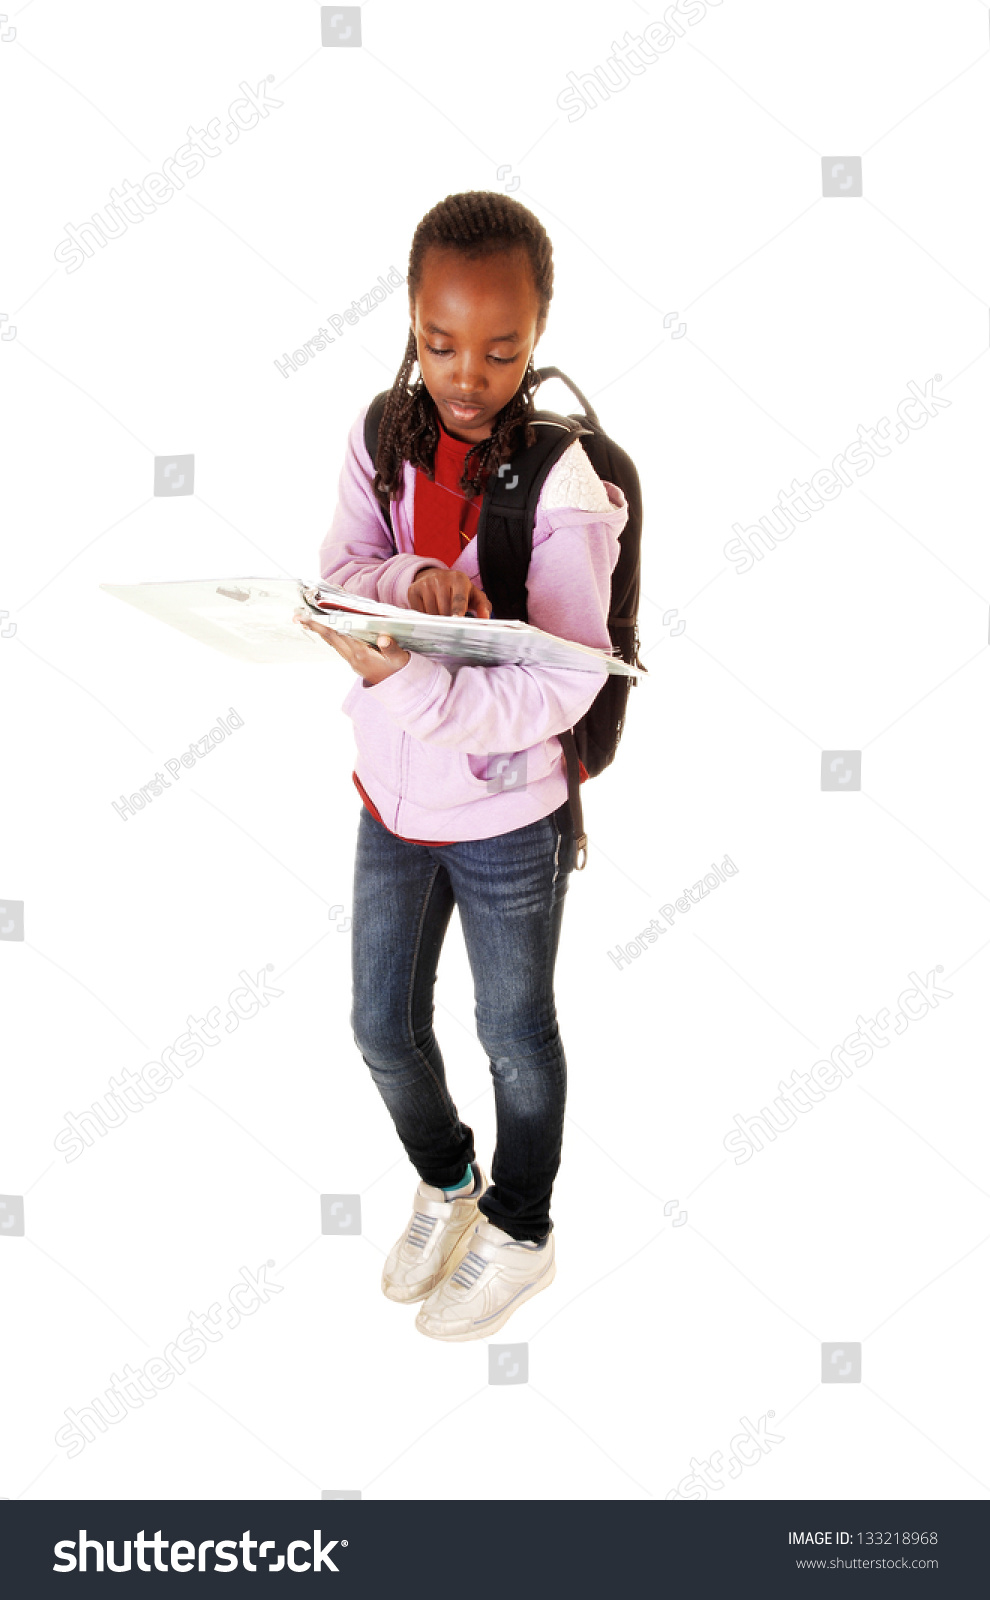 A young black teen girl standing for white background with her backpack on  her back,